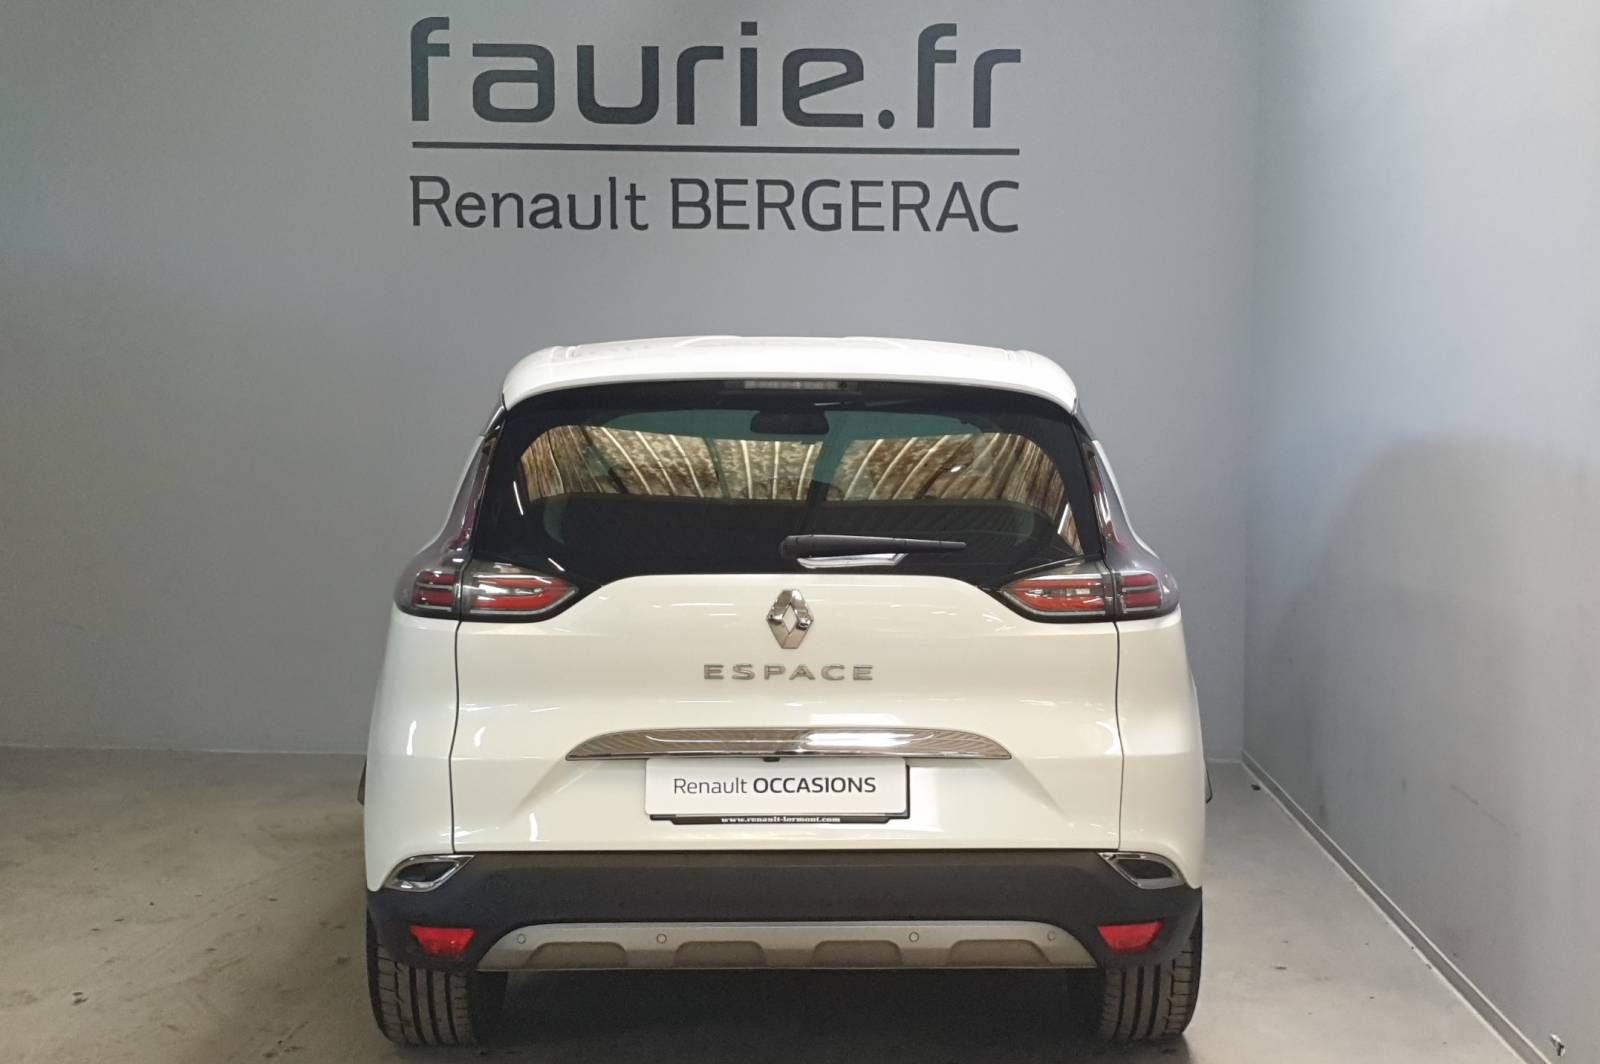 RENAULT Espace dCi 160 Energy Twin Turbo - véhicule d'occasion - Site Internet Faurie - Renault - Faurie Auto Bergerac - 24100 - Bergerac - 6